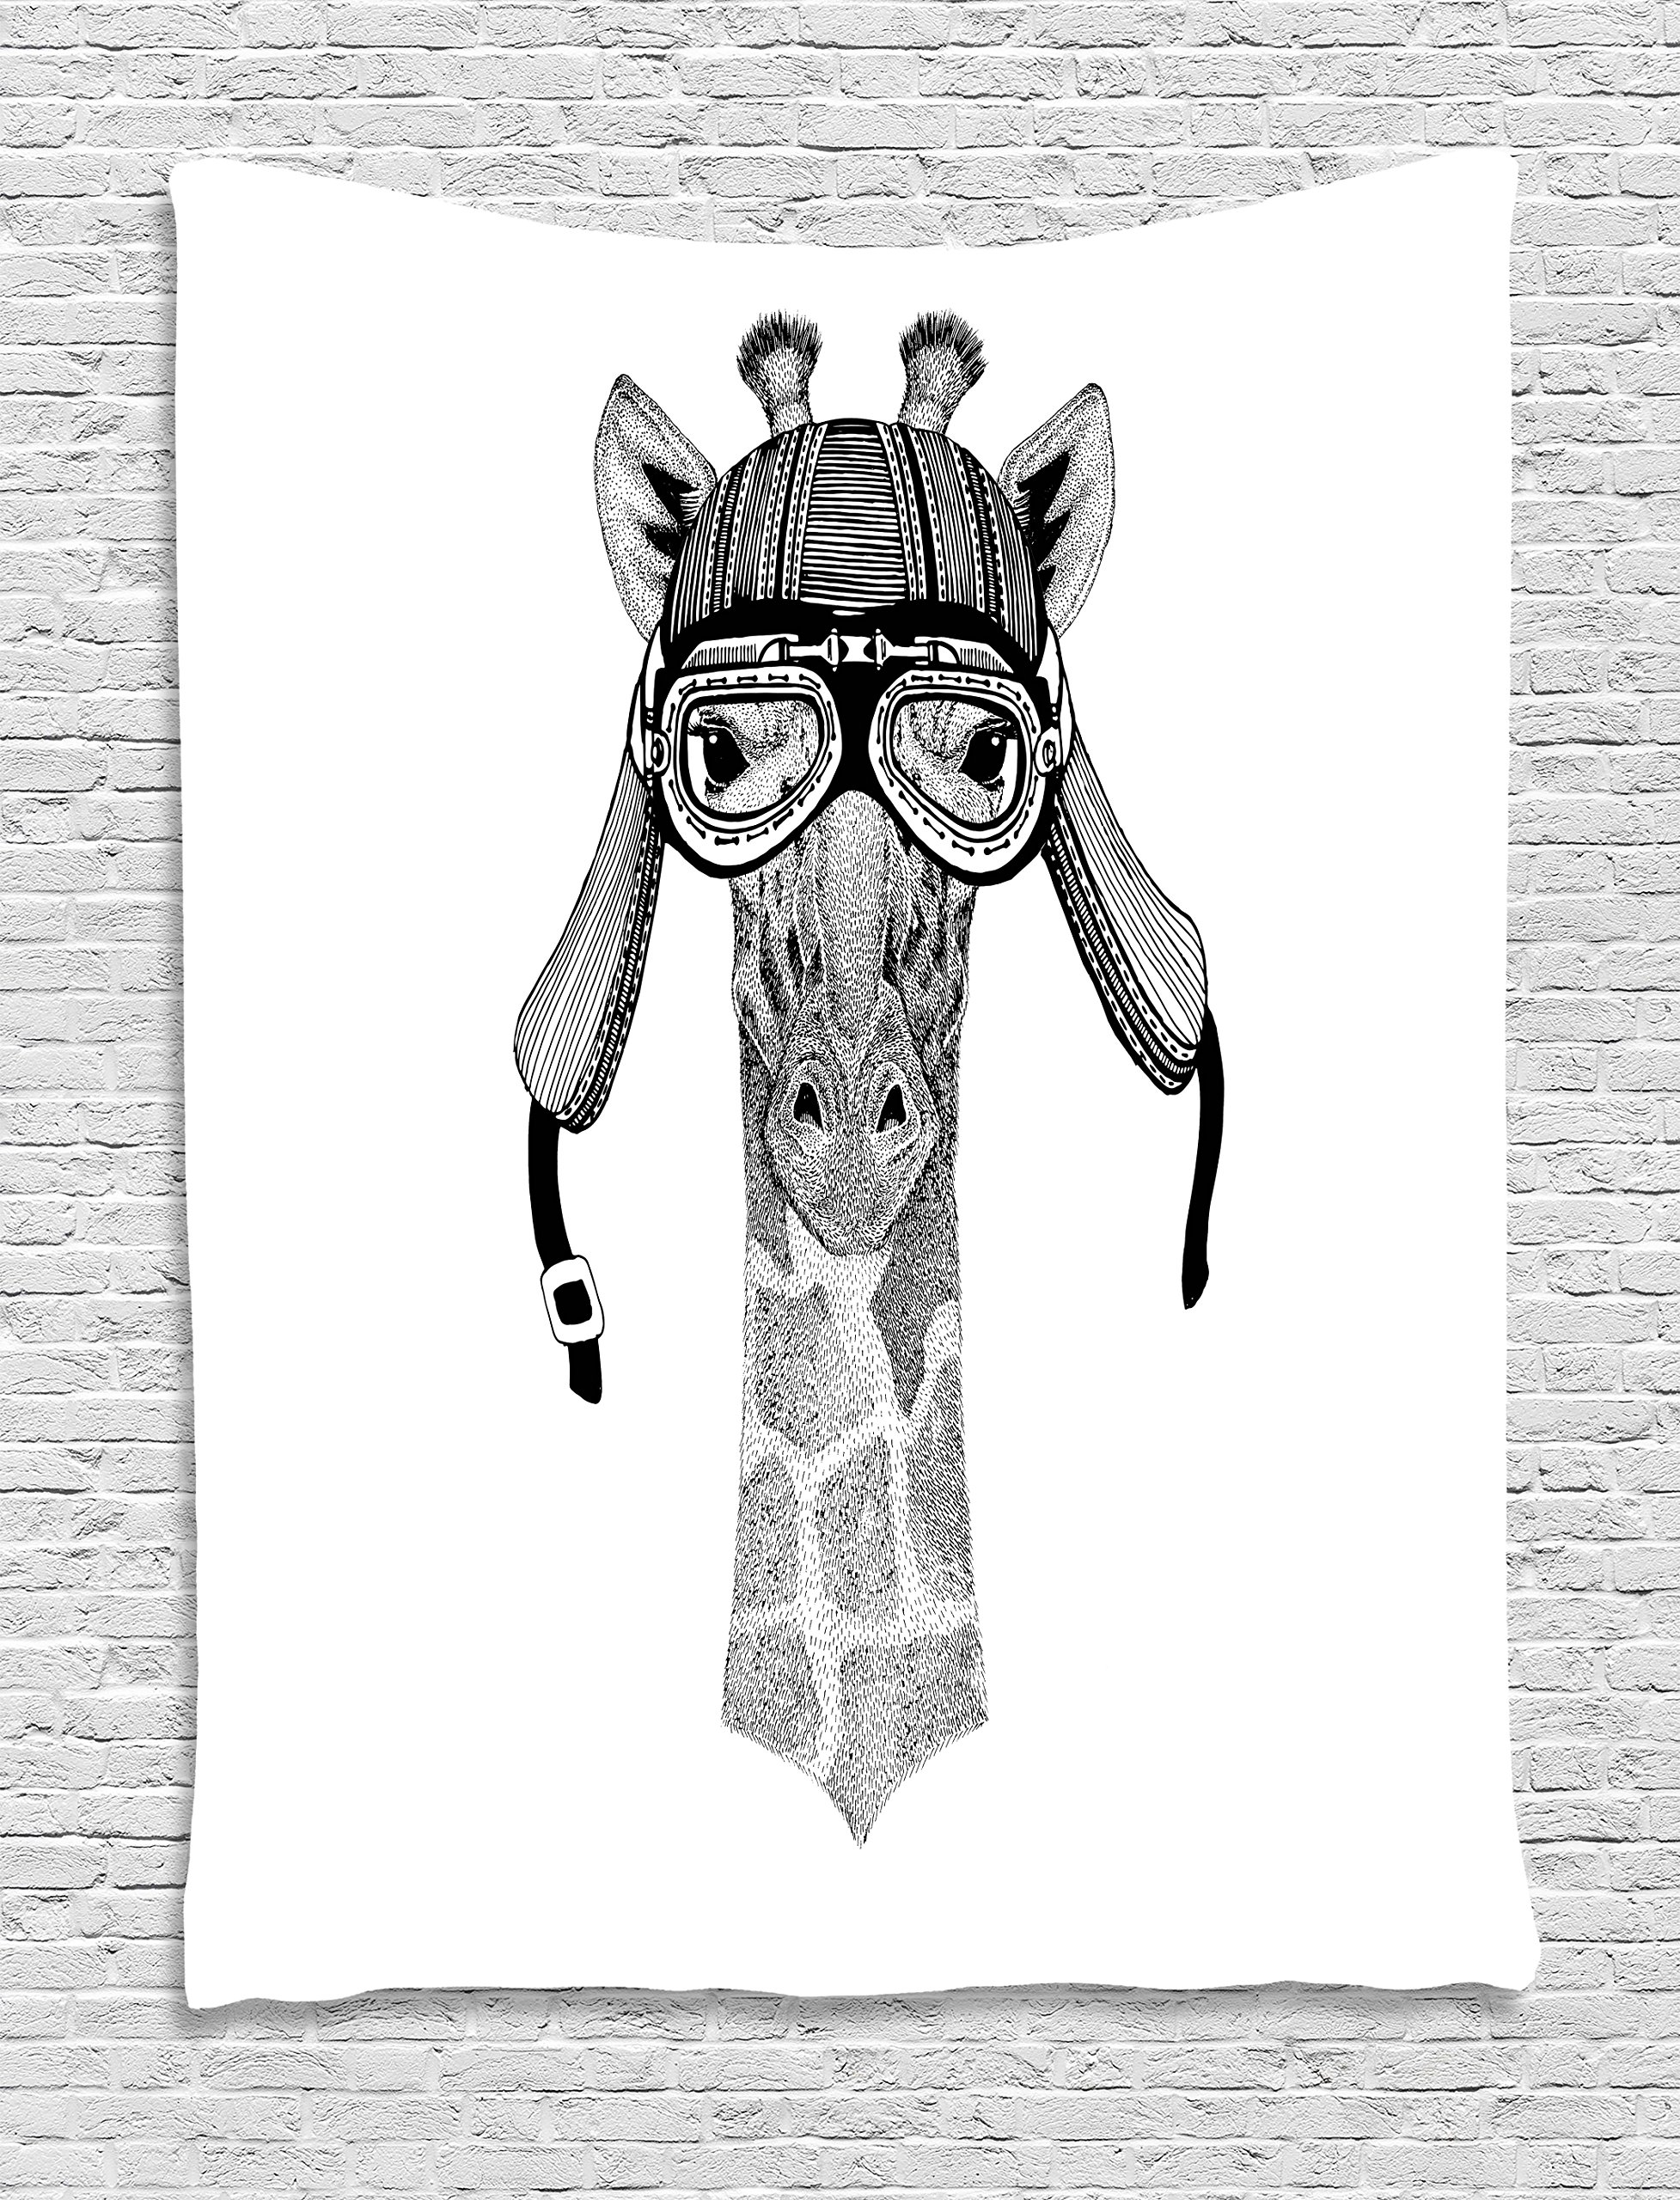 Lunarable Giraffe Tapestry by, Vintage Motorcycle Helmet Wearing Animal Monochrome Retro Influenced Character, Wall Hanging for Bedroom Living Room Dorm, 60 W X 80 L Inches, Black White